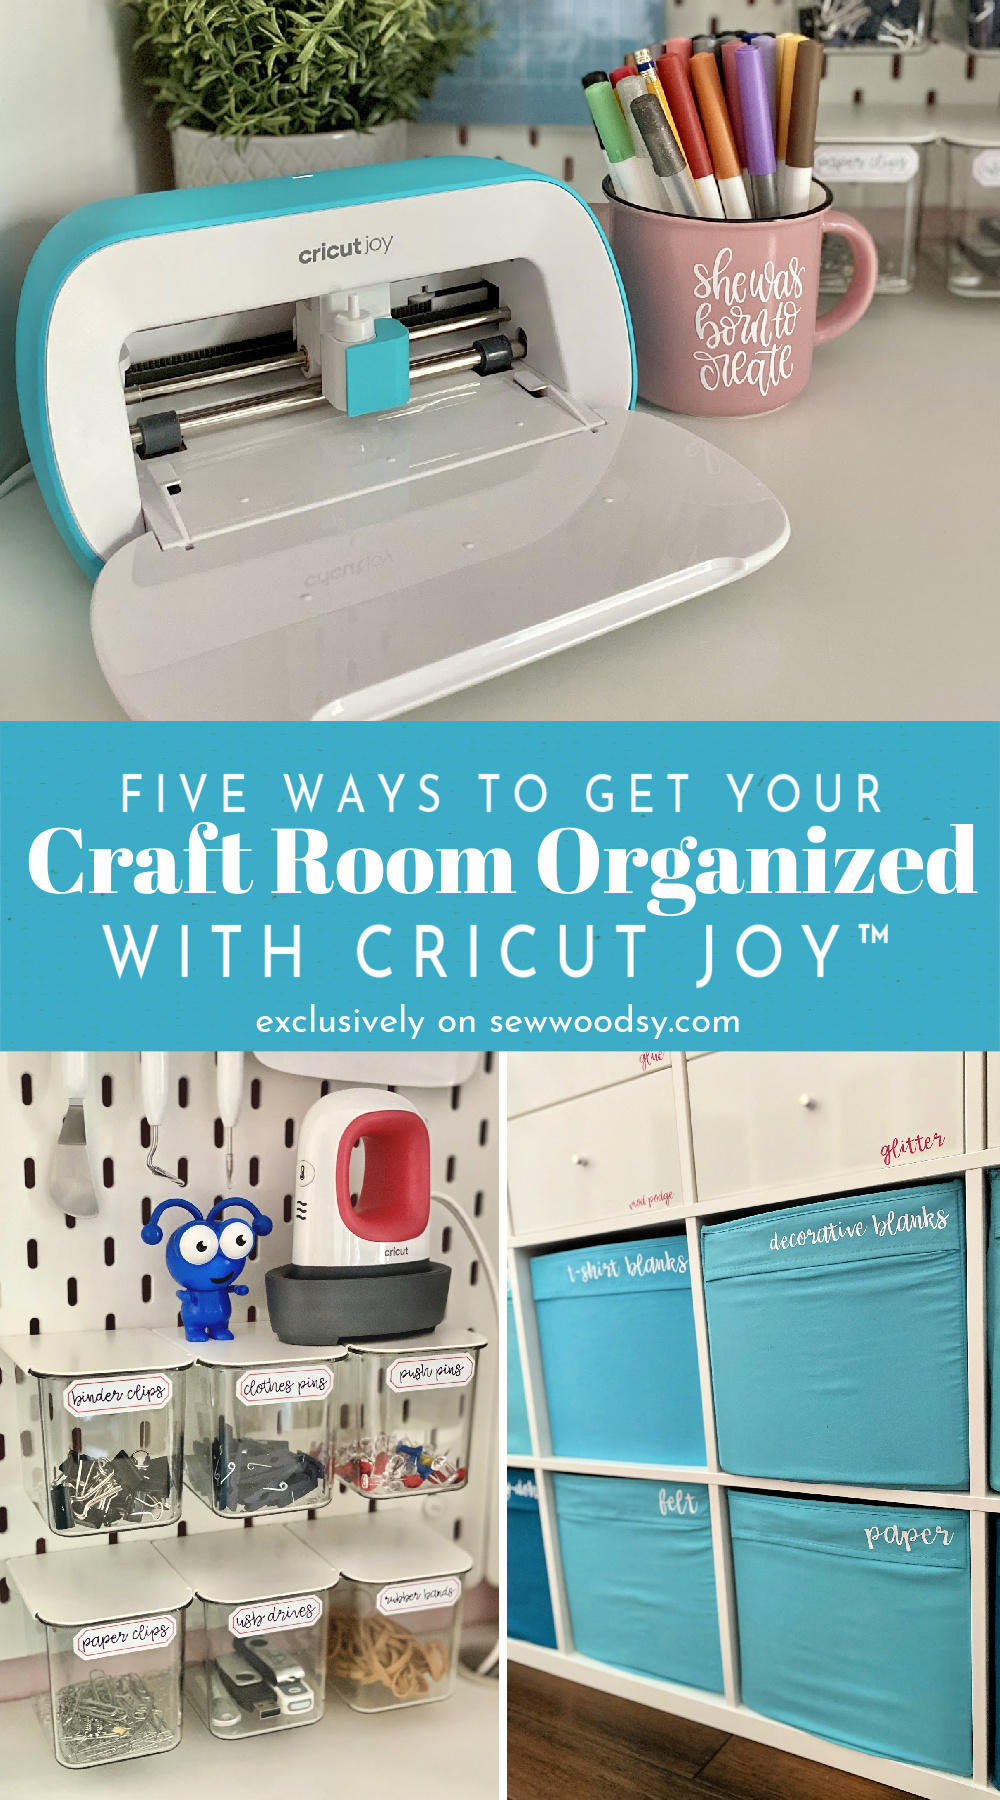 Three photo collage of Cricut Joy and organization projects with text for Pinterest.